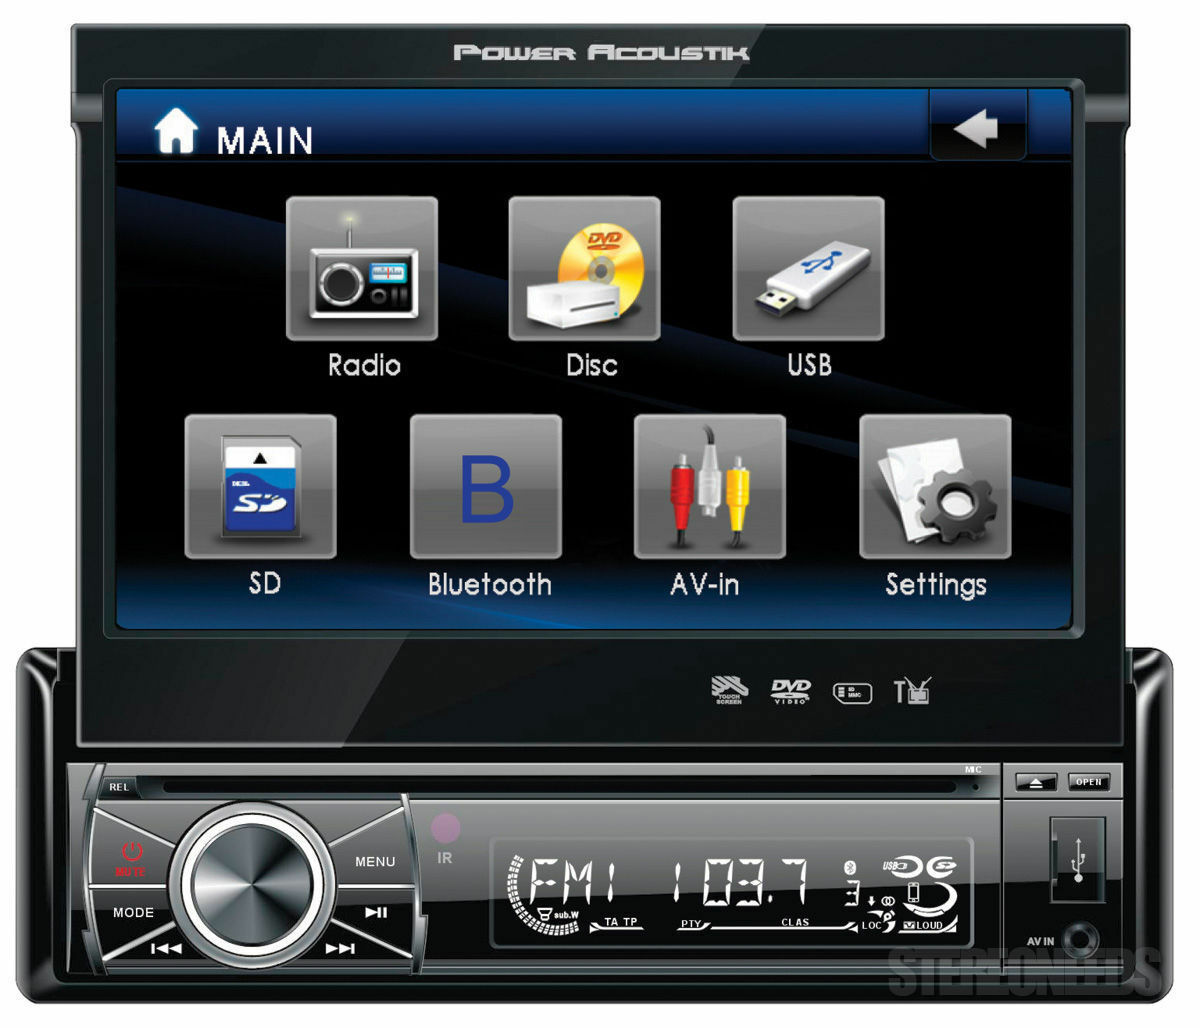 s l1600 power acoustik video in dash units without gps ebay Power Acoustik PD-710 Screen Reselotion at crackthecode.co